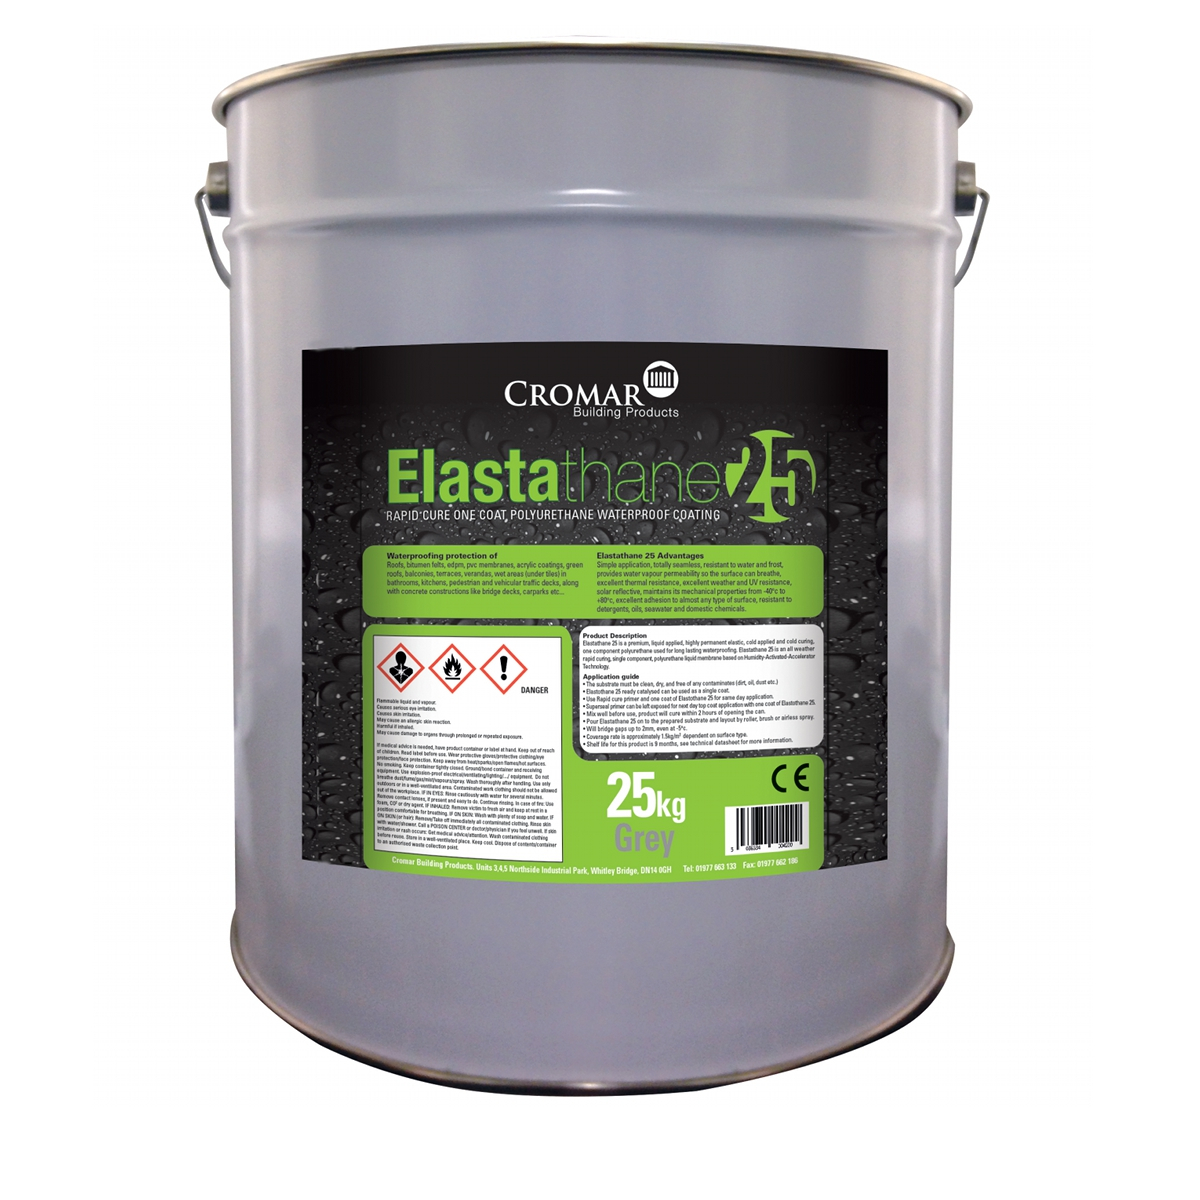 Elastathane25 Liquid Waterproofer